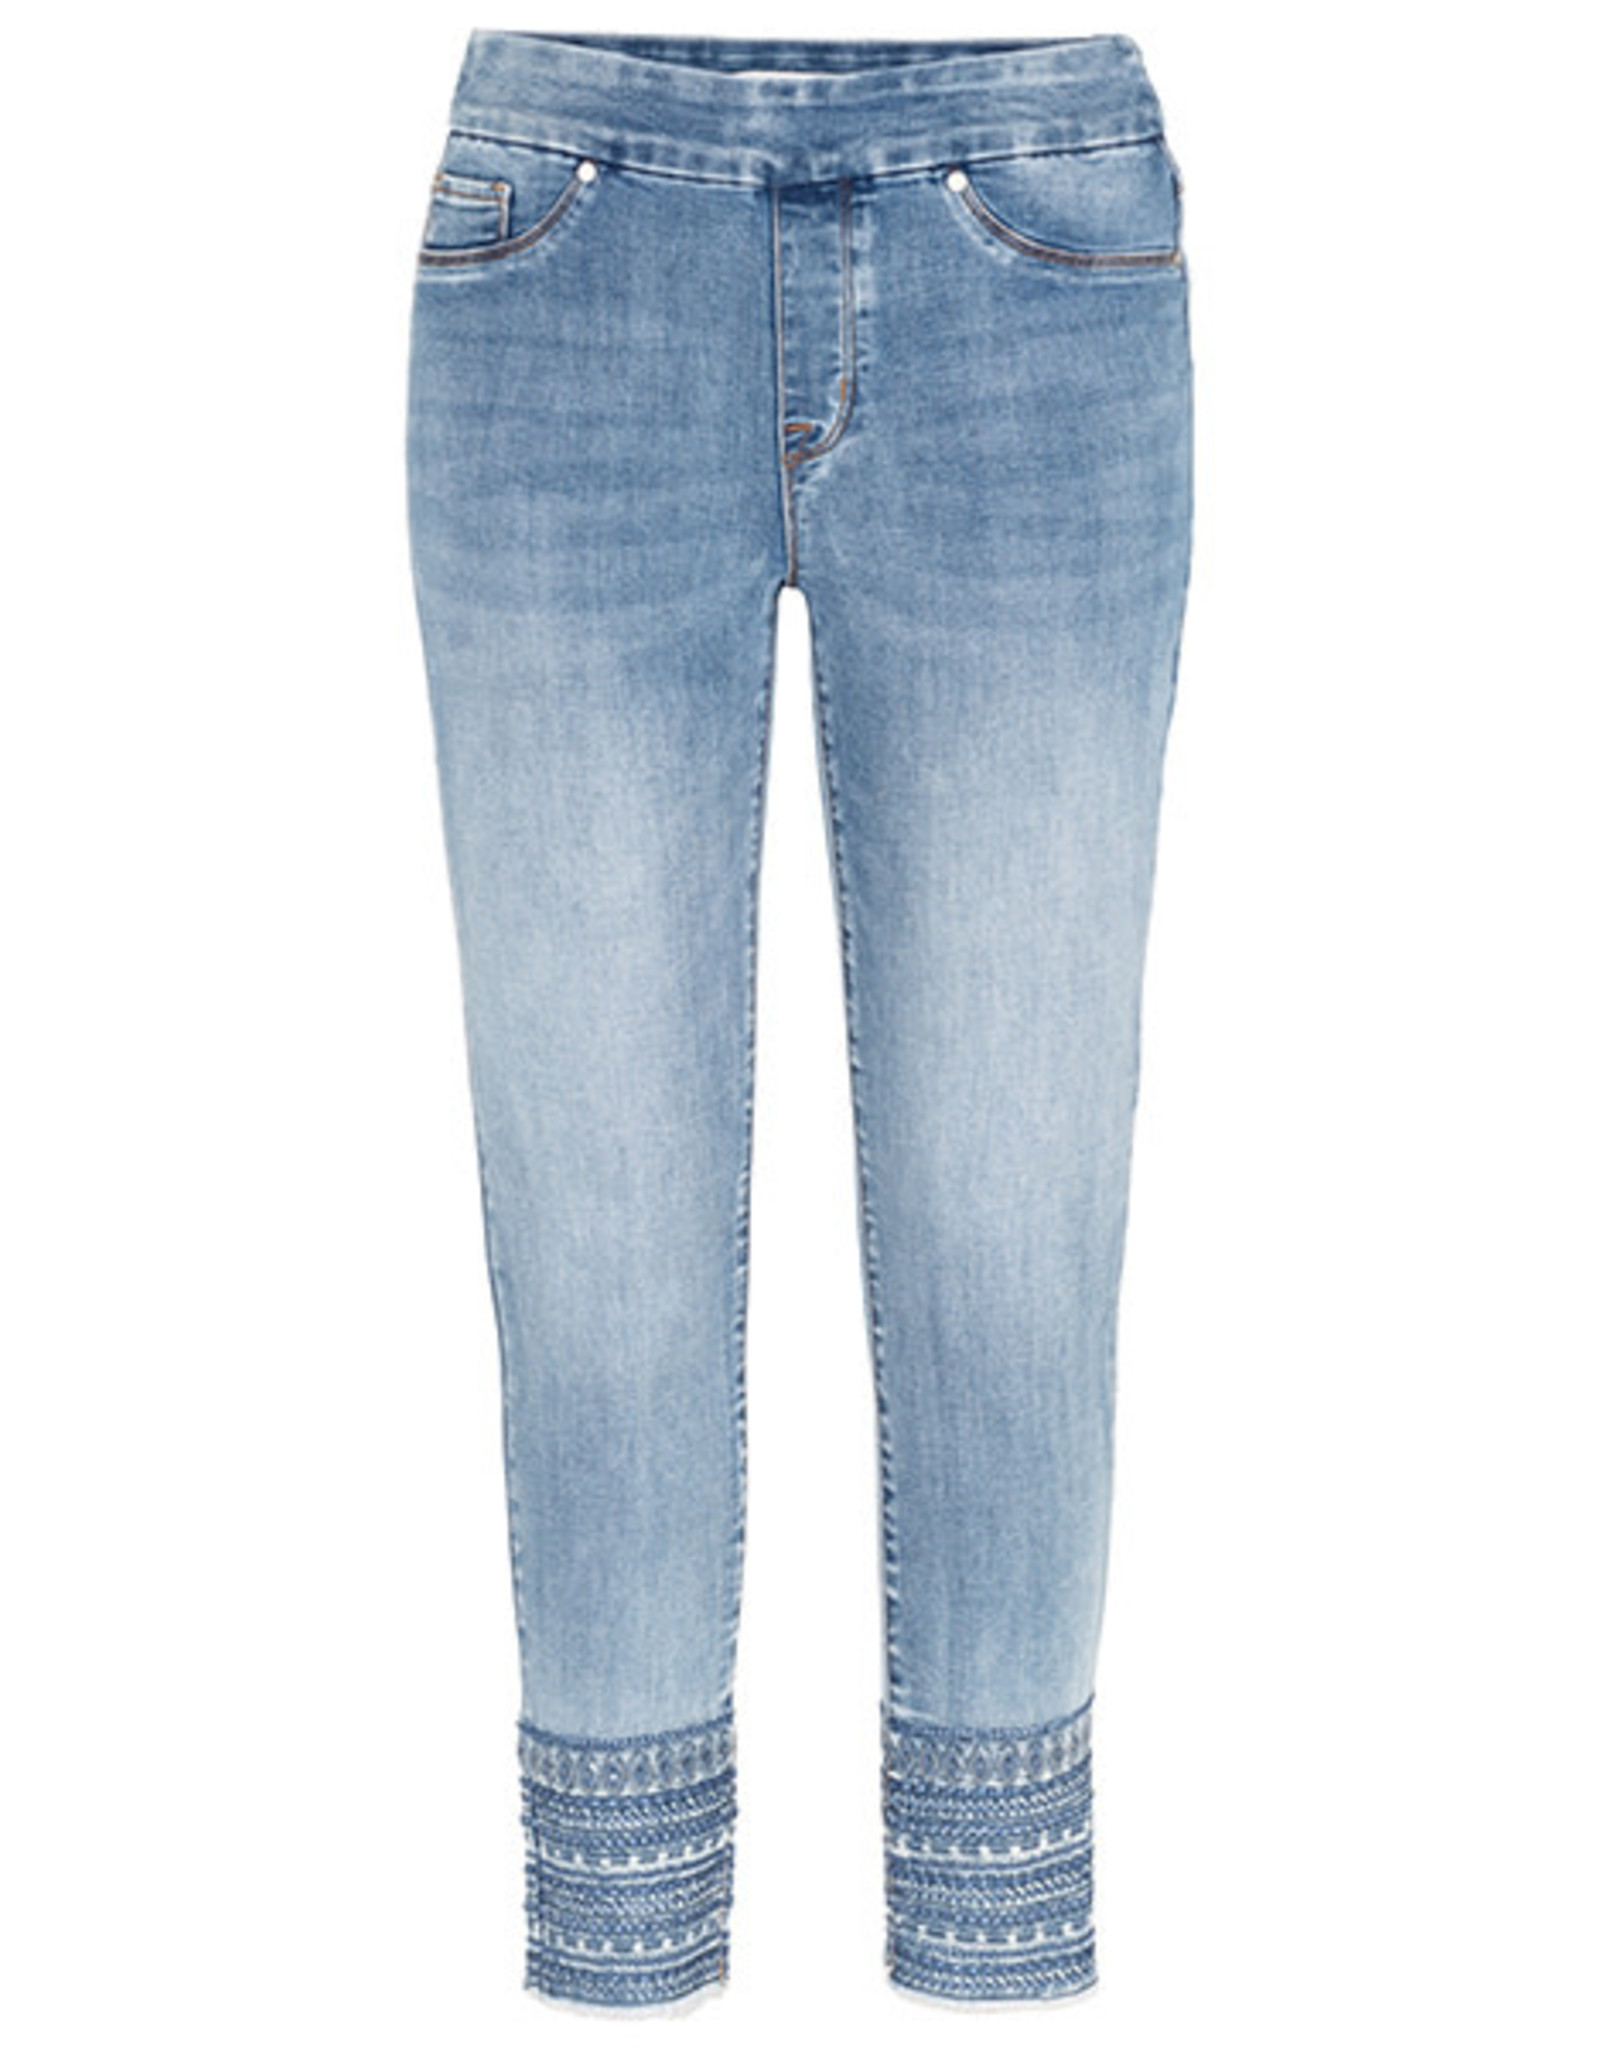 Tribal Pull-On Jegging w/Sparkly Embroidered Hem